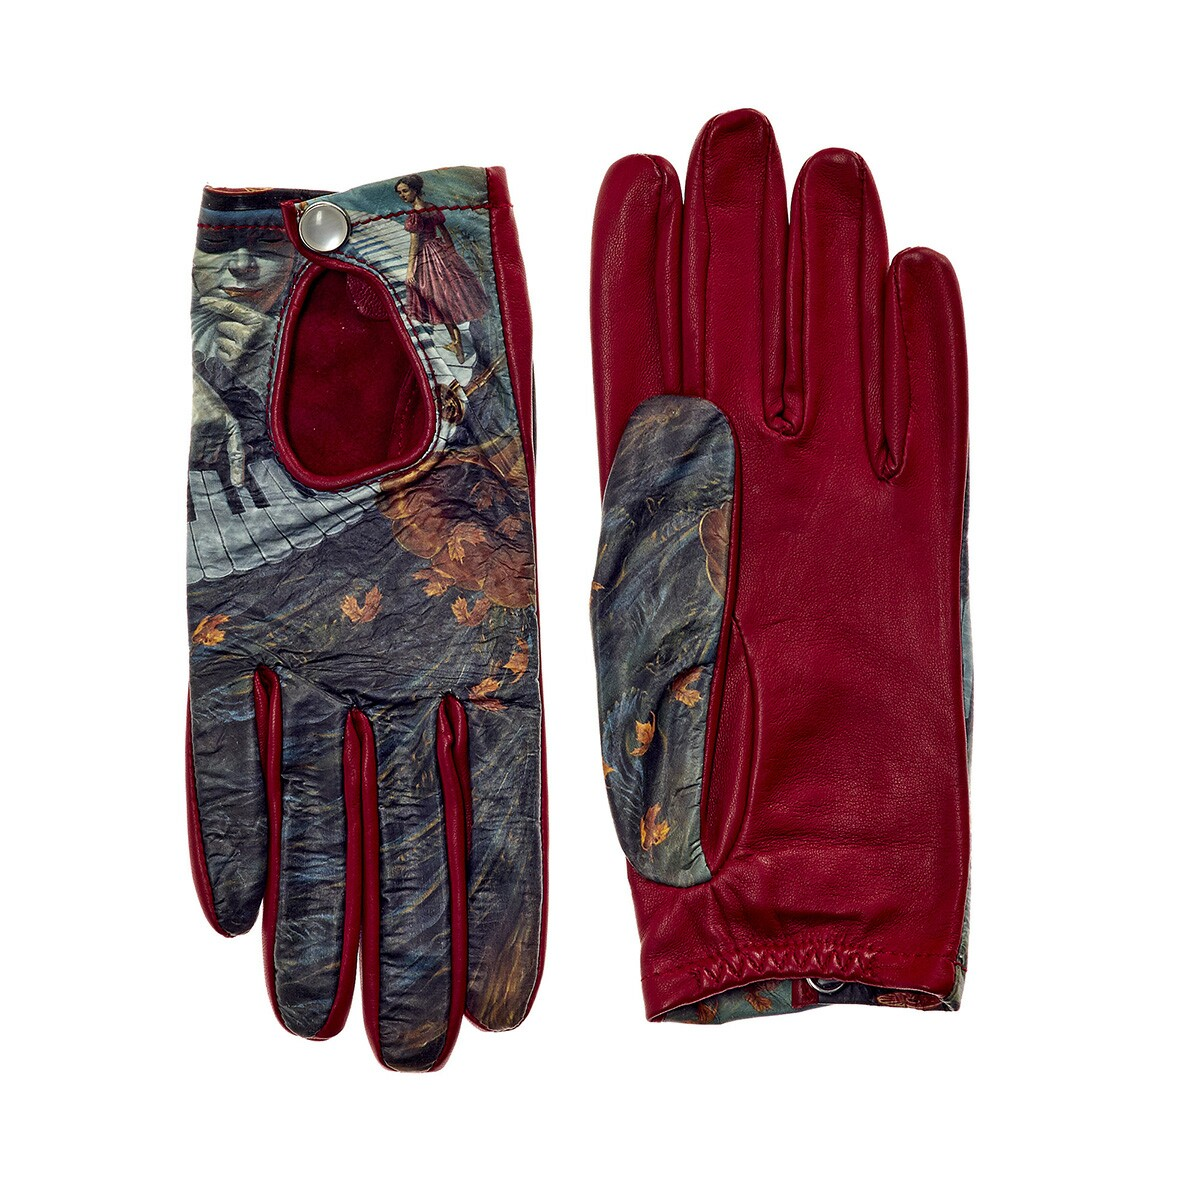 5290e65a4 ICON Leather - Women's Prelude Driving Gloves   Leather Gloves ...